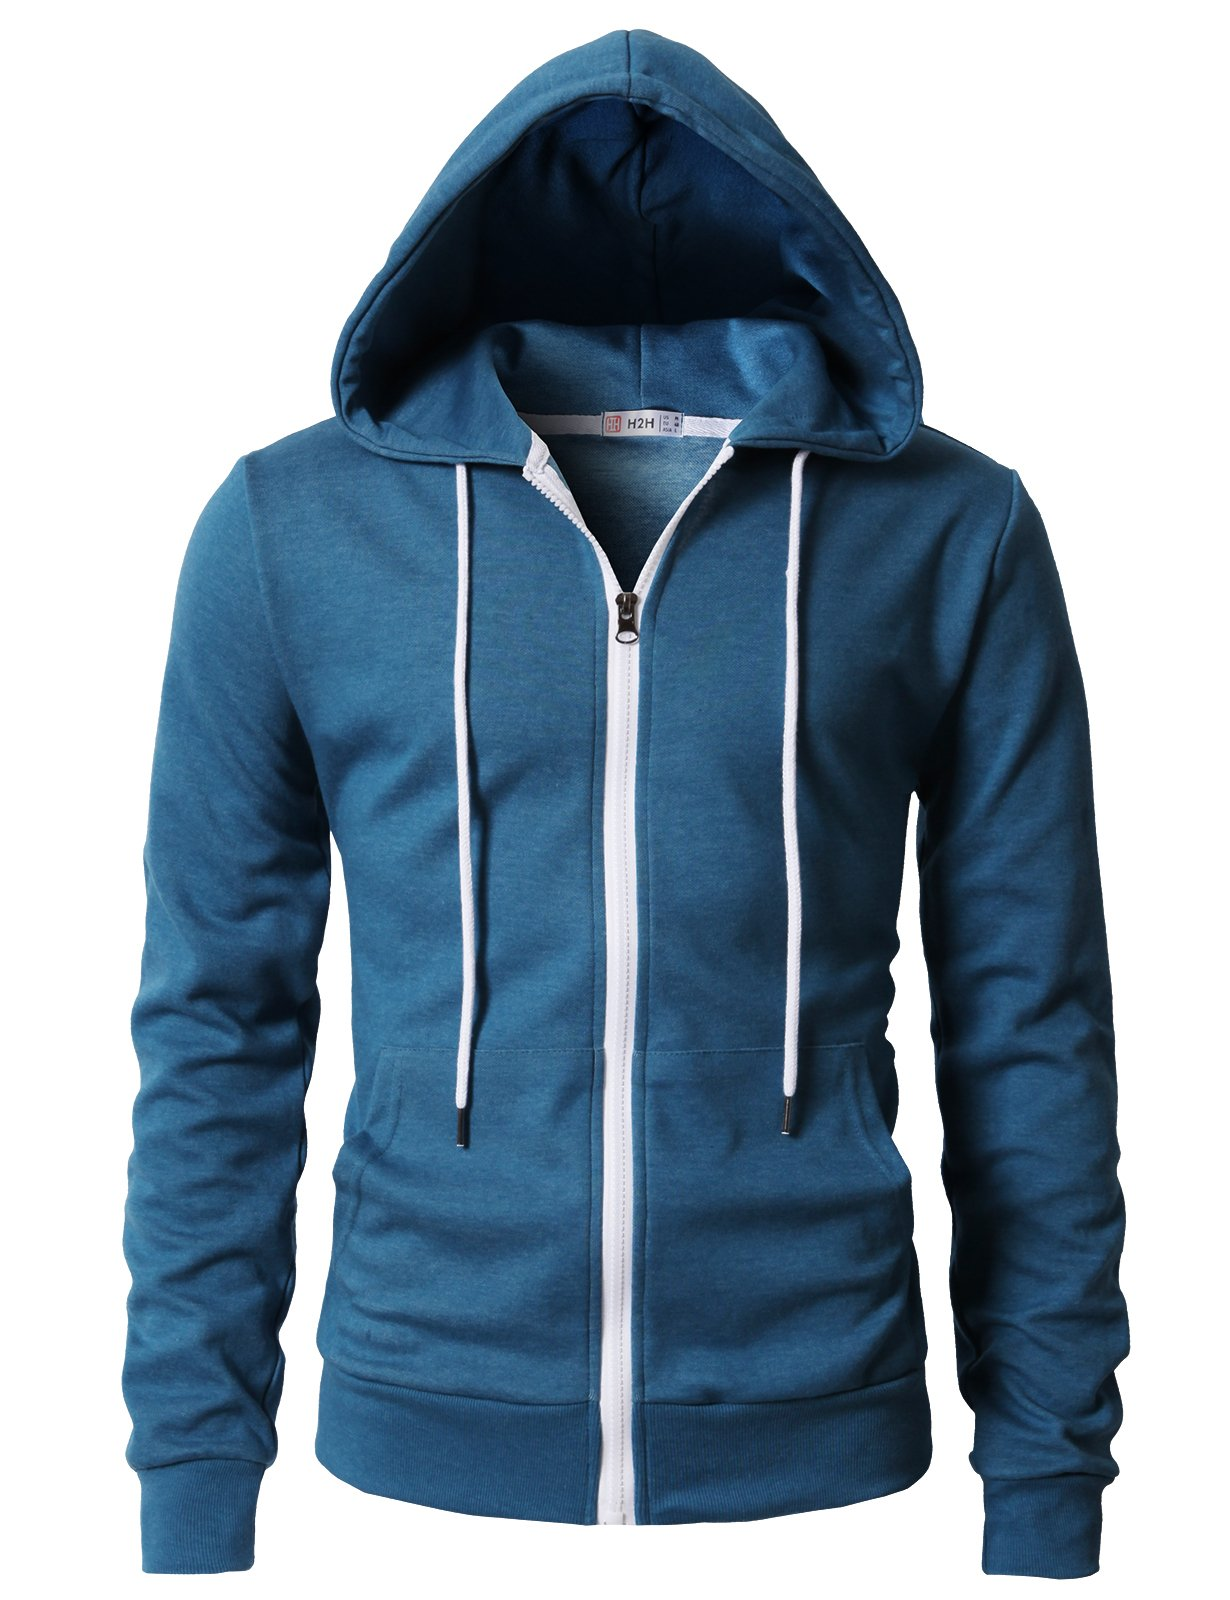 H2H Mens Active Hoodies Jacket Coat Zipper Pullover Sweatshirts Two Pocket Slim Fit Tone Color Steelblue US 2XL/Asia 3XL (KMOHOL0131)